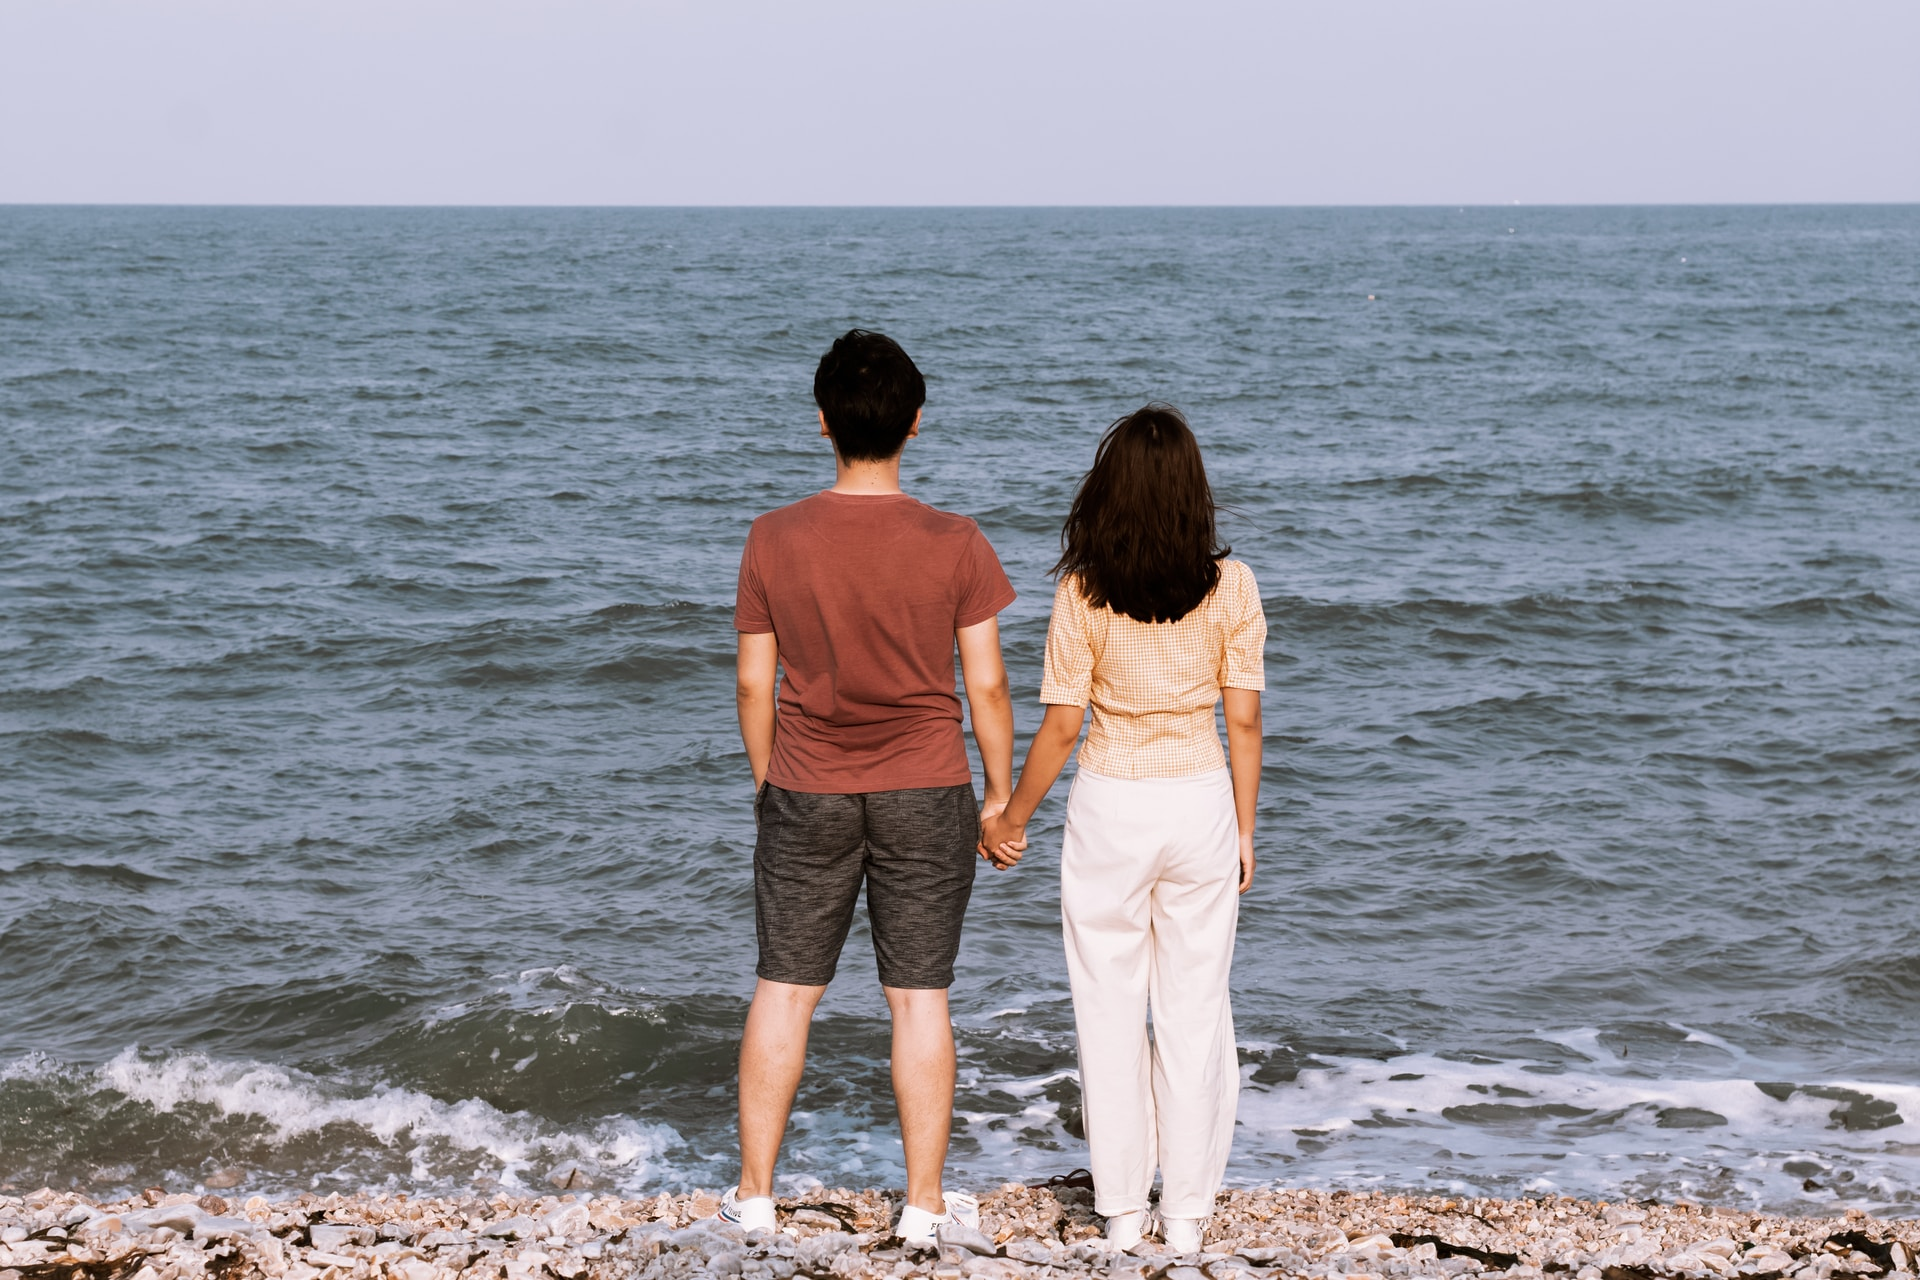 man and woman standing infront of ocean water at daytime